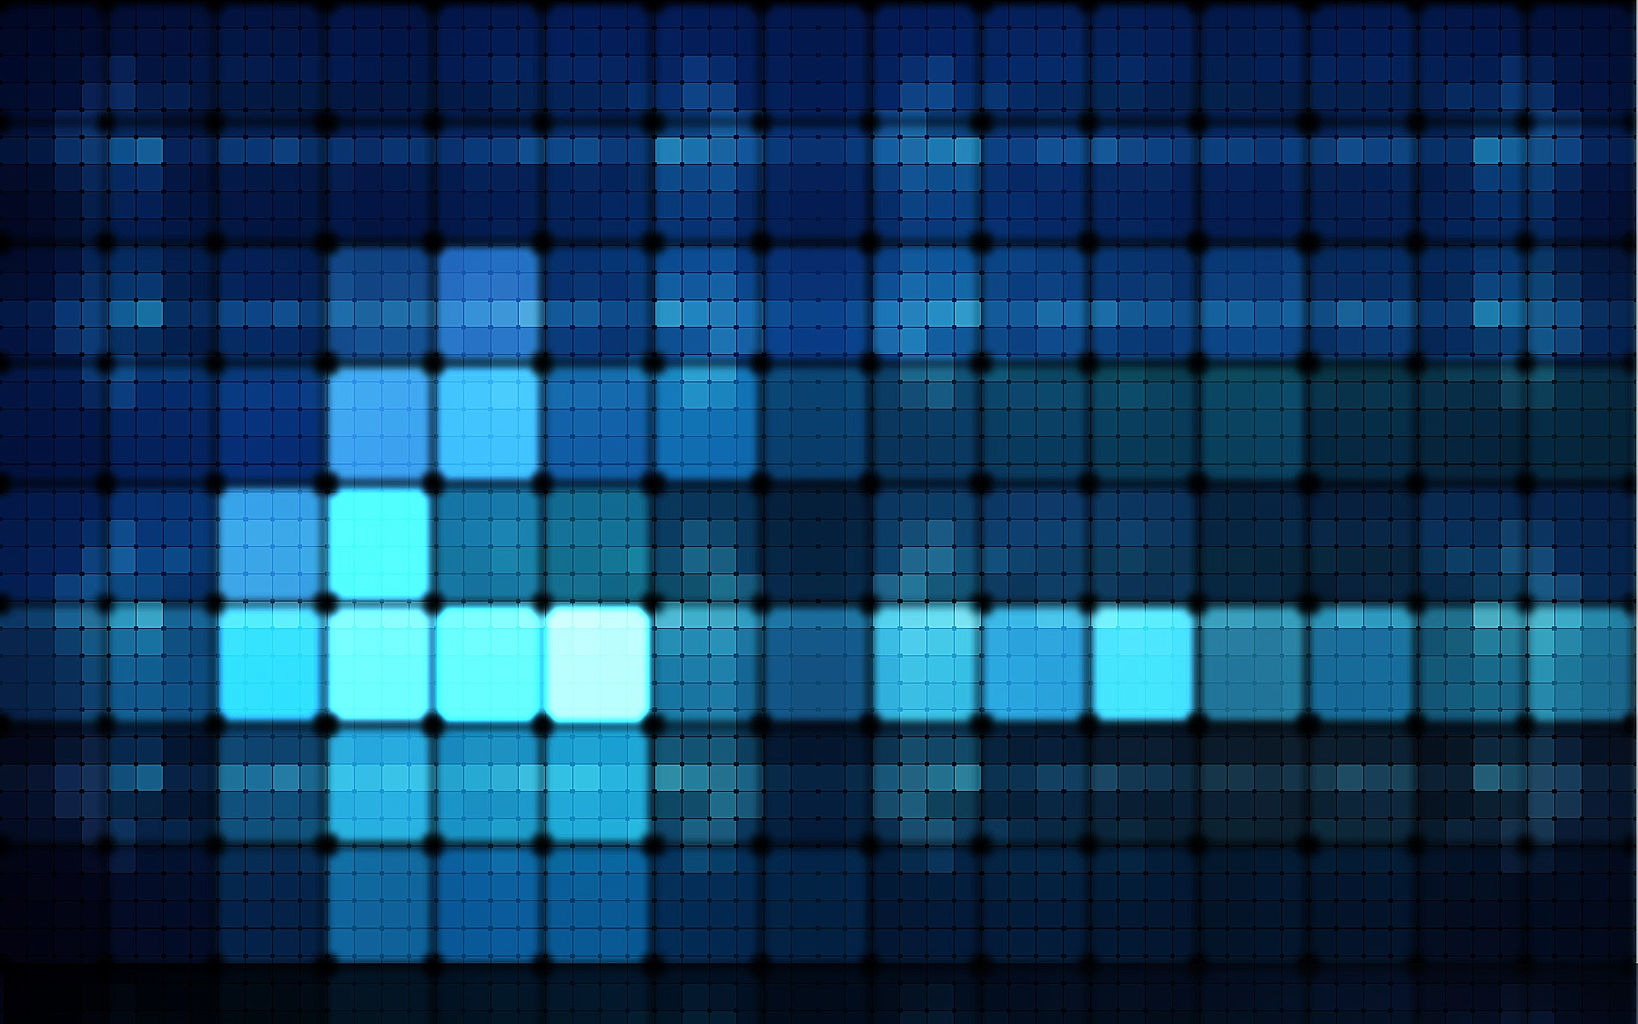 blue-lights-1920x1200_cool_twitter_backgrounds.jpg